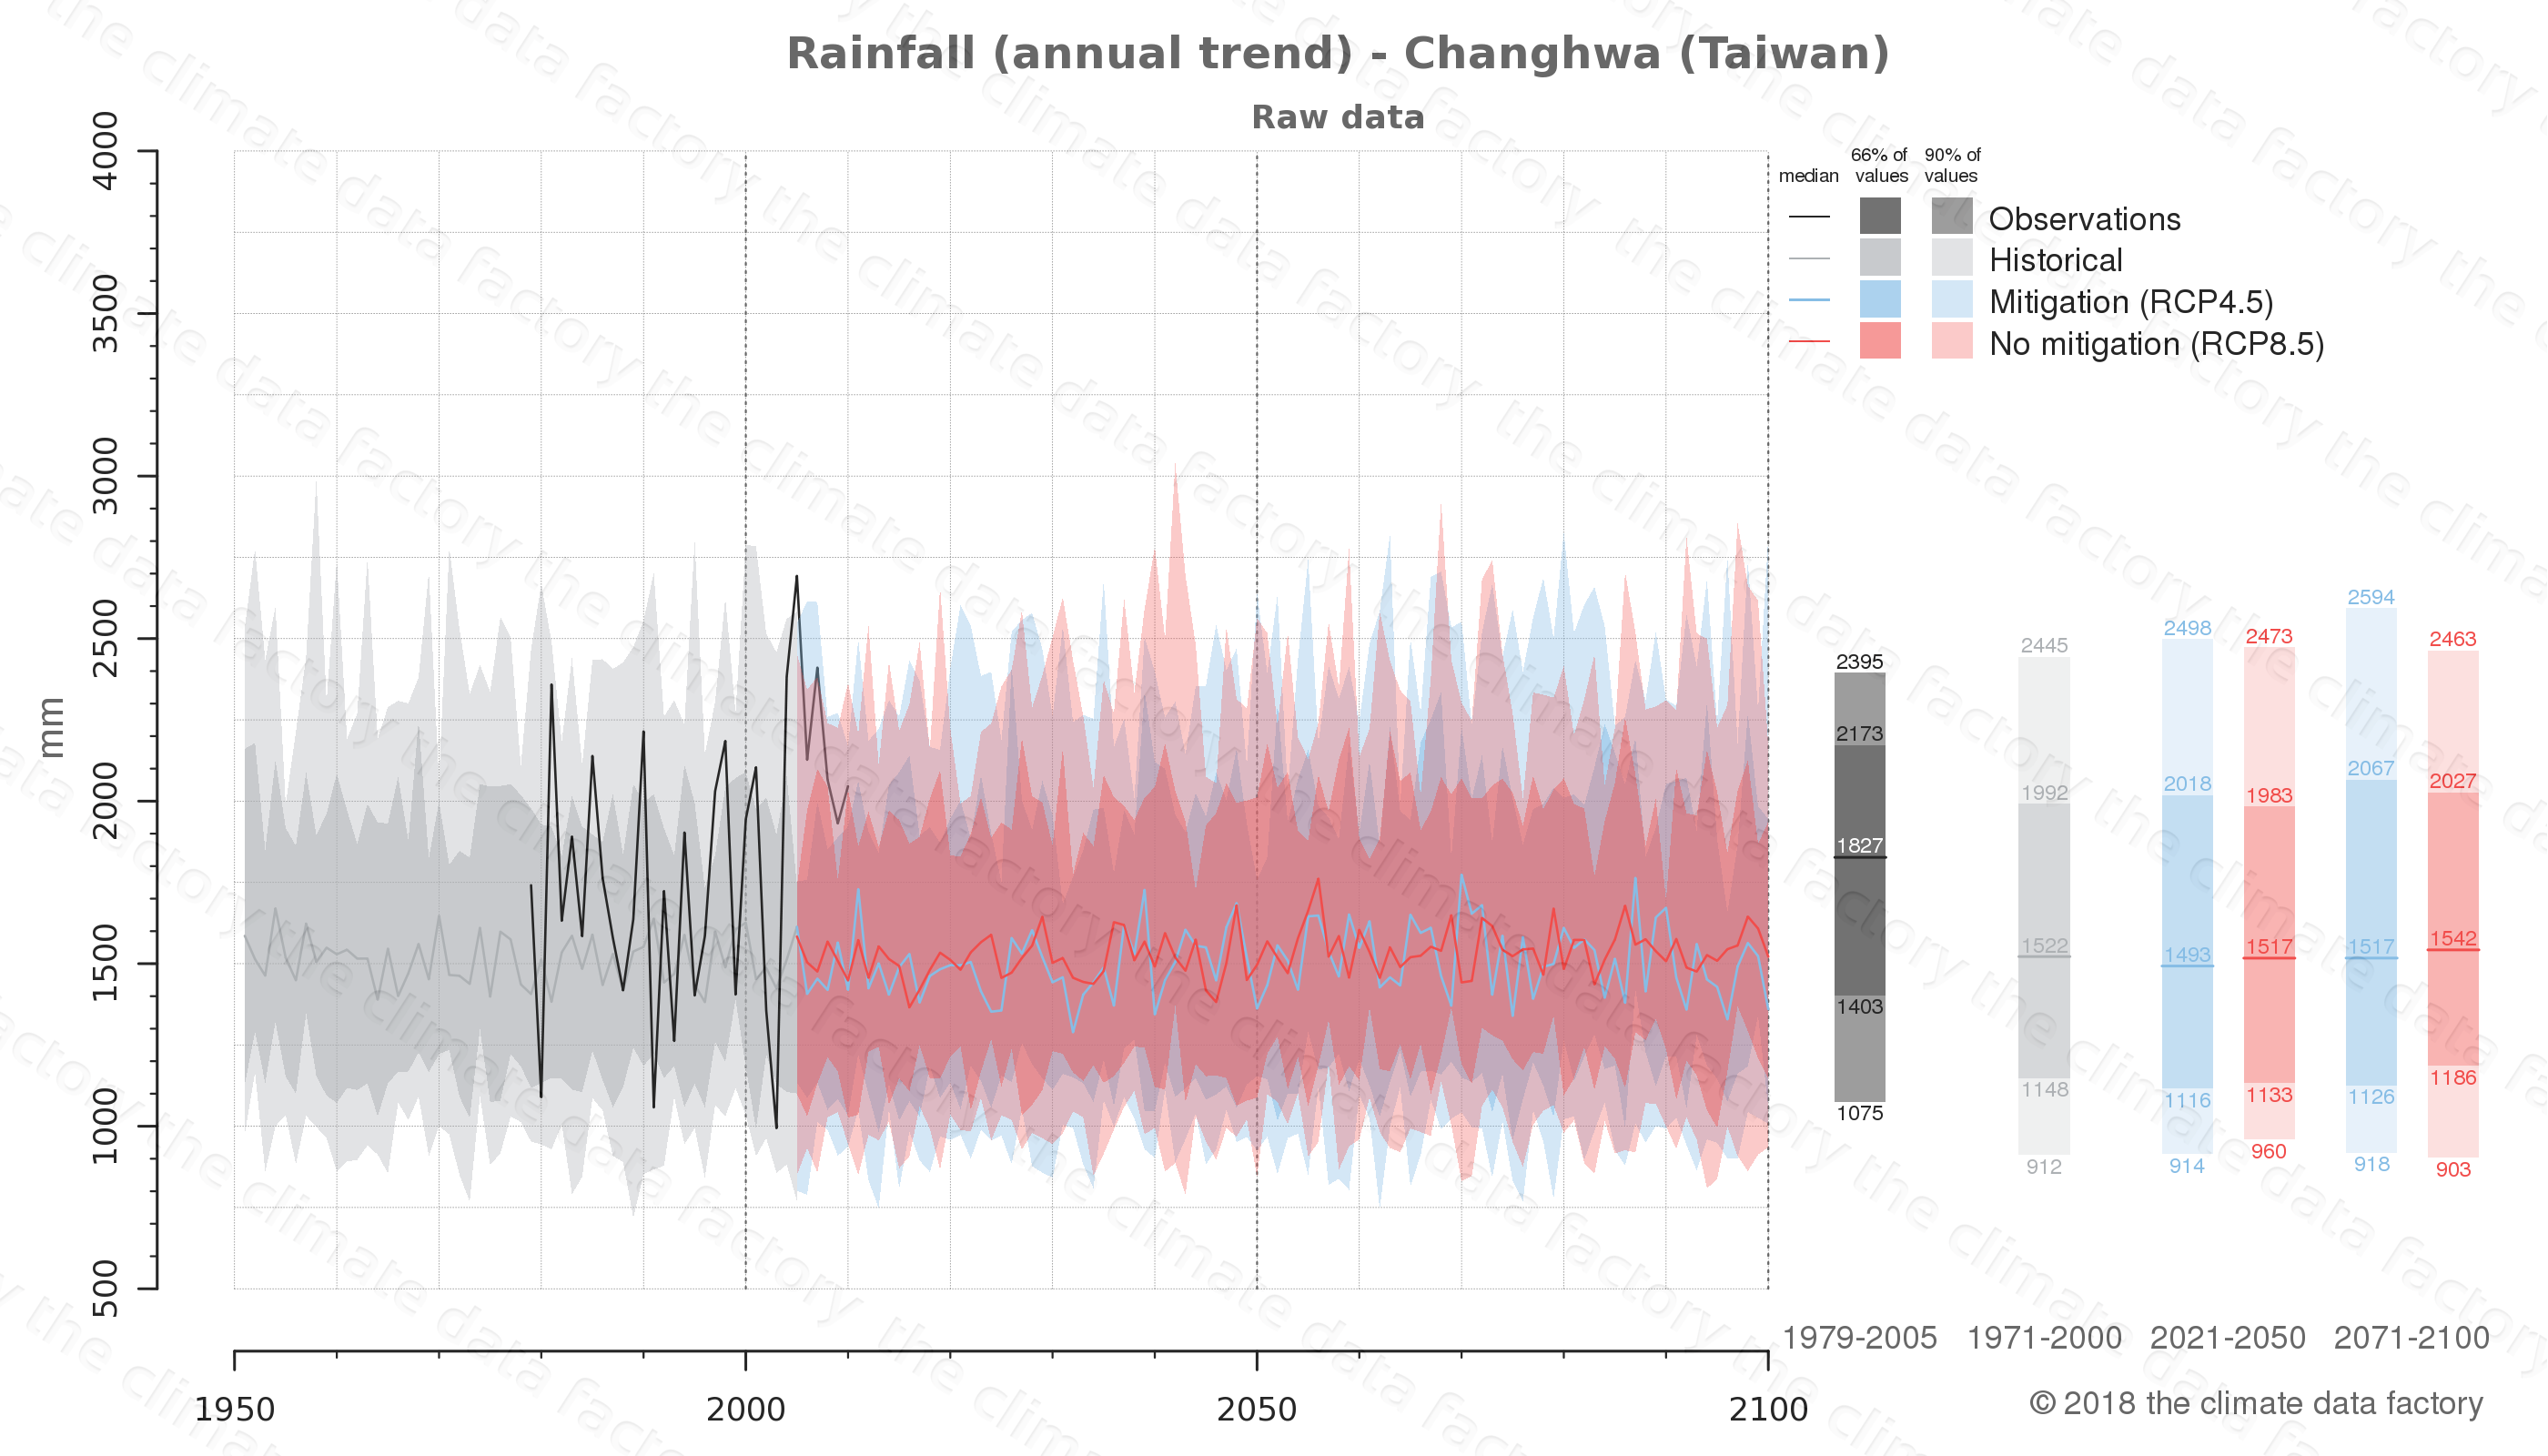 climate change data policy adaptation climate graph city data rainfall changhwa taiwan